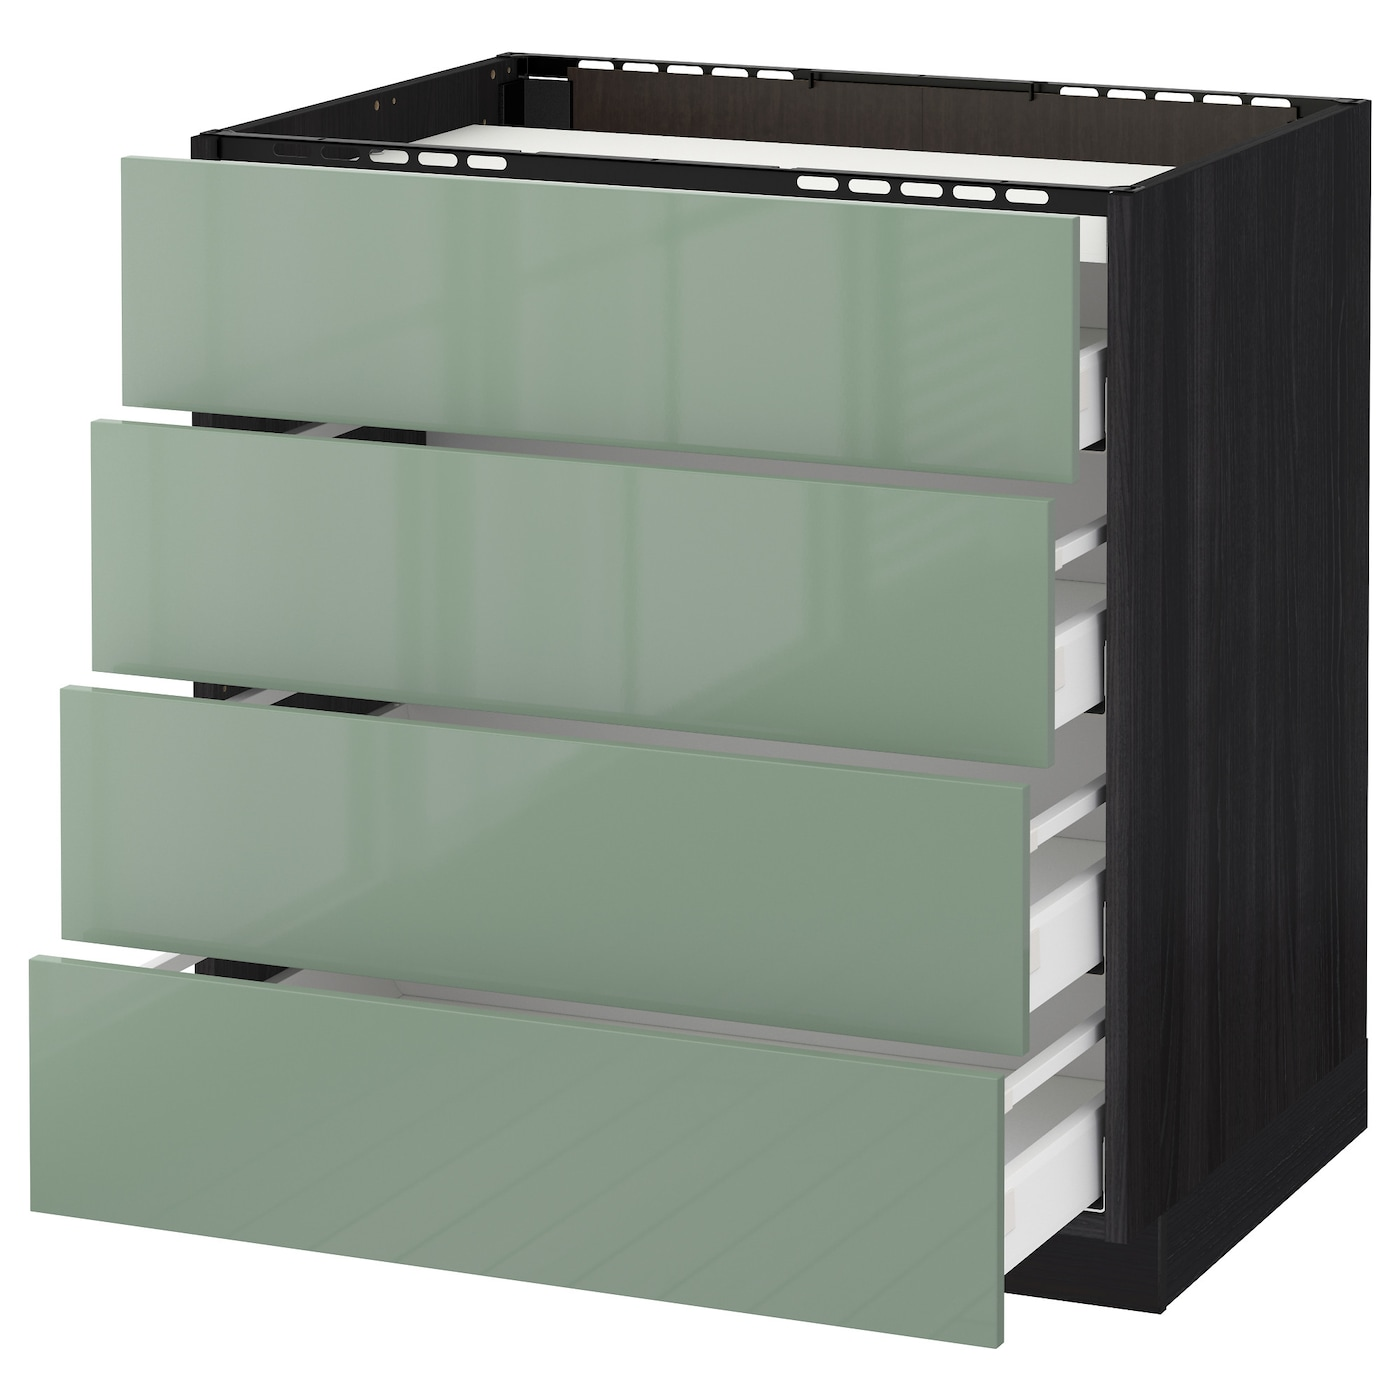 IKEA METOD/MAXIMERA base cab f hob/4 fronts/4 drawers Smooth-running drawers with stop.